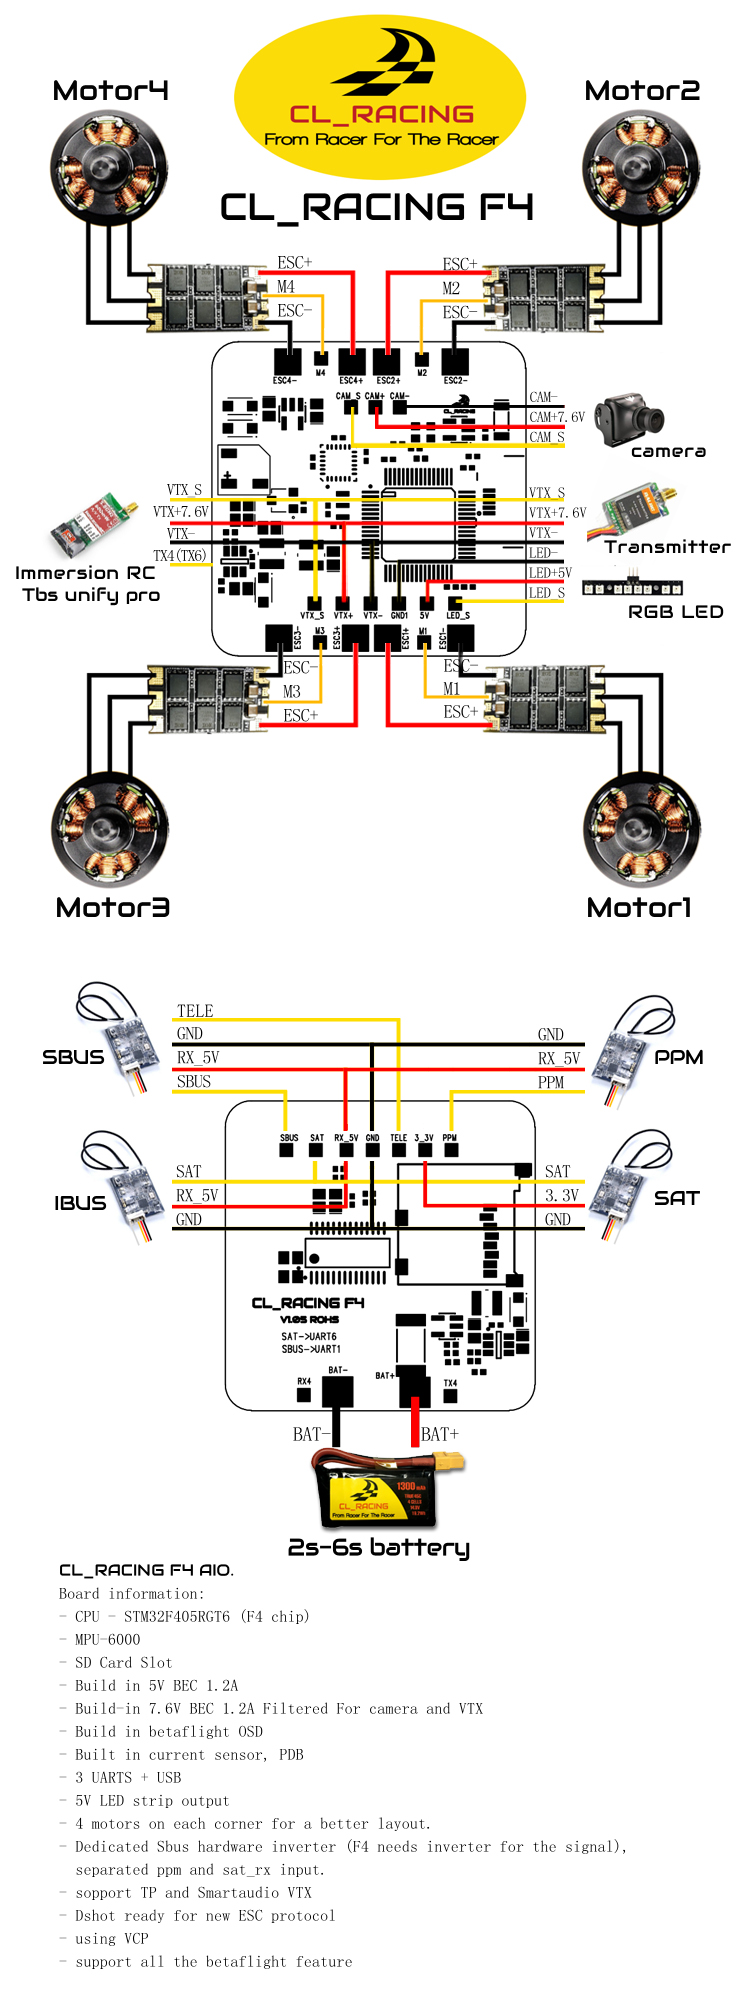 cl-racing-wiring.jpg